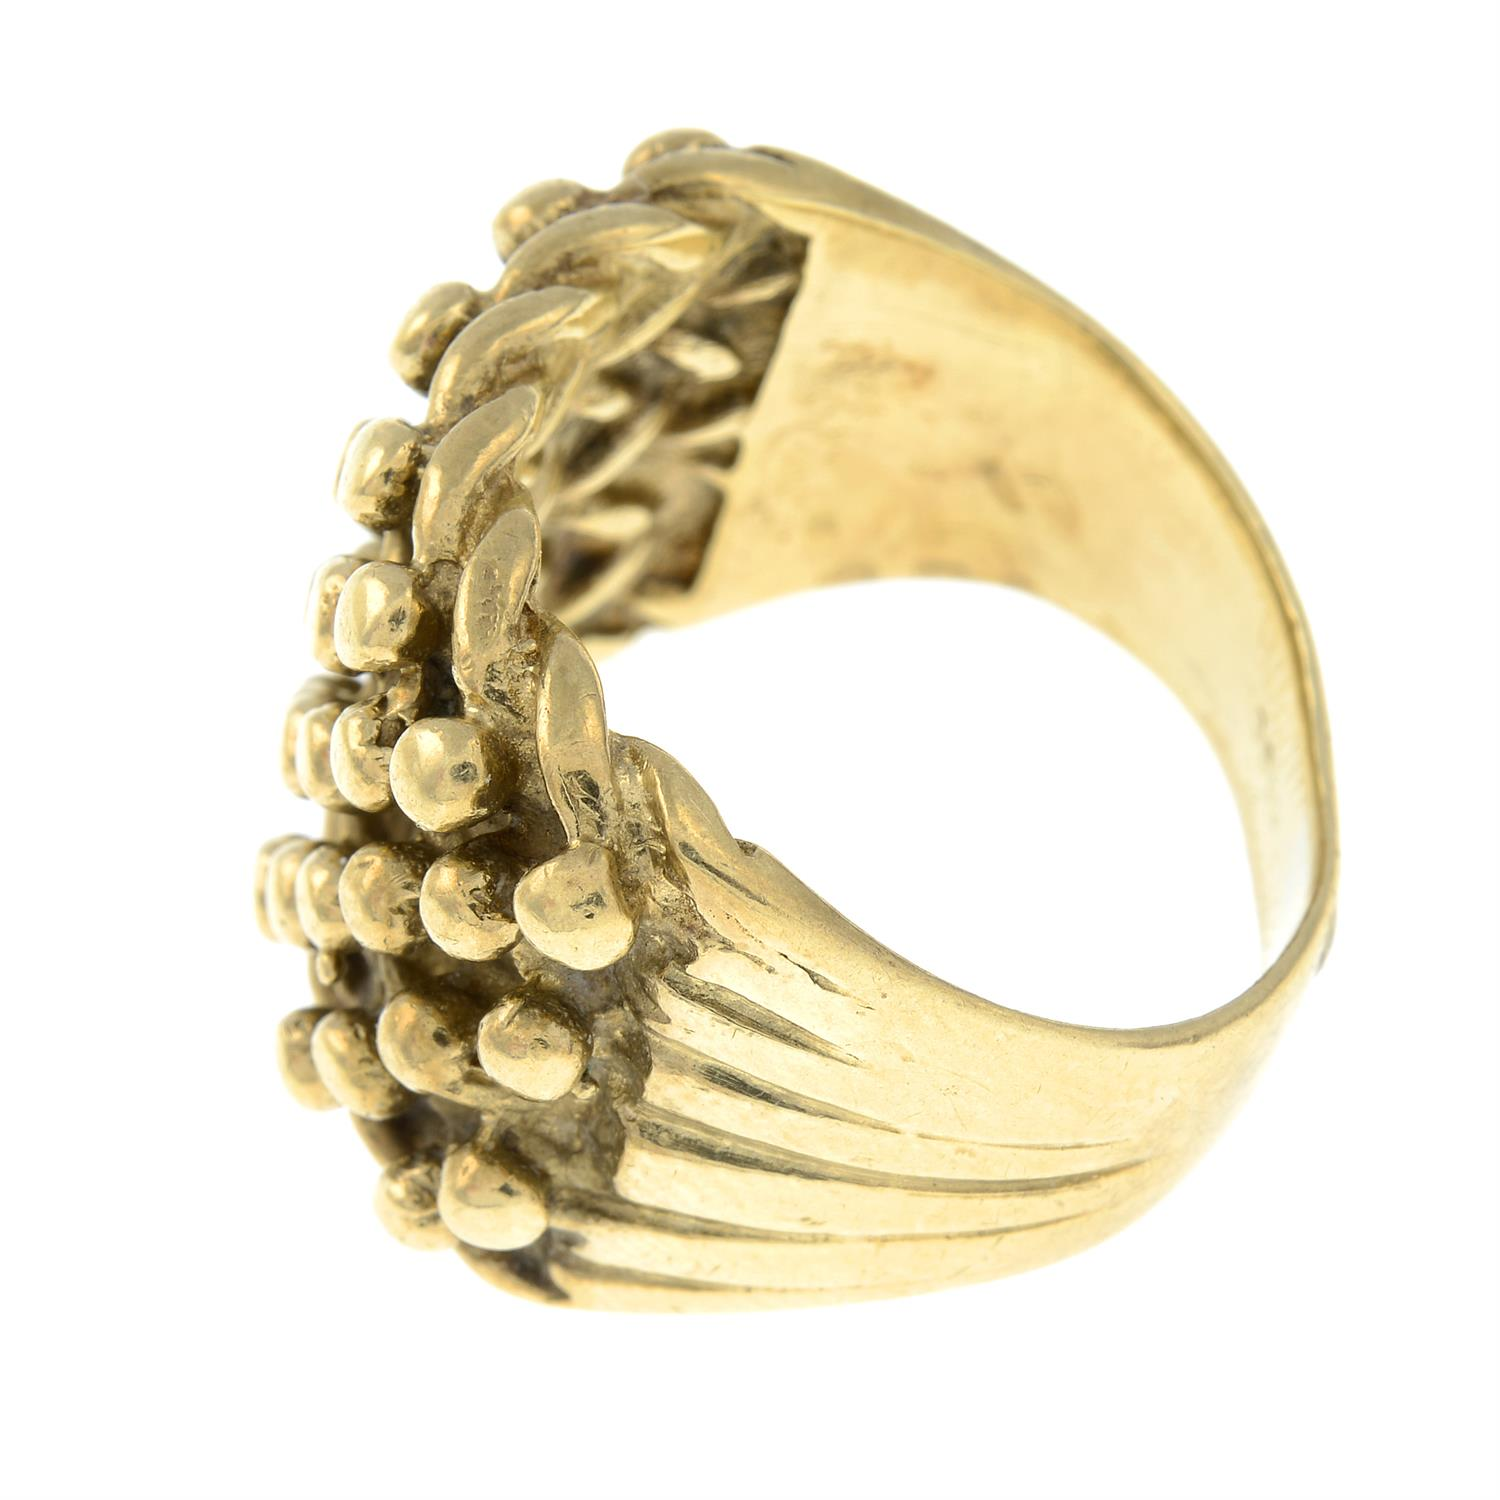 A gentleman's ring. - Image 2 of 3